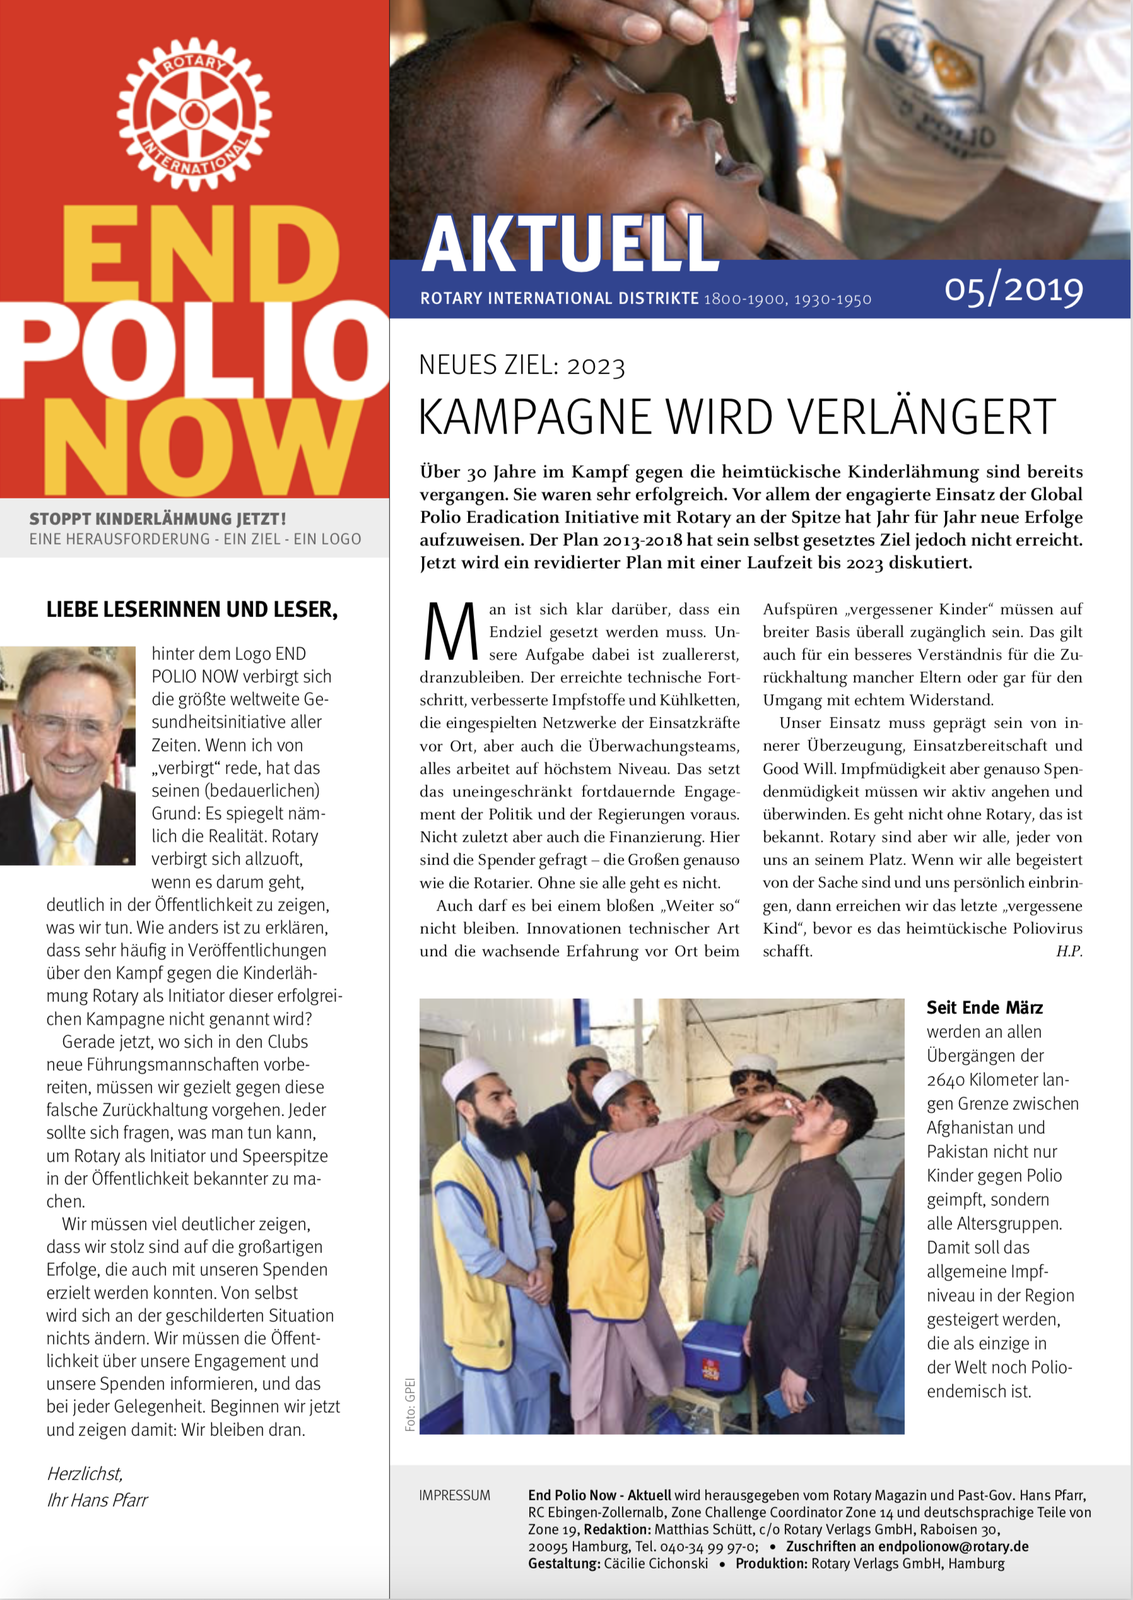 2019, epn, end polio now, polio, krankheit, kinderlähmung